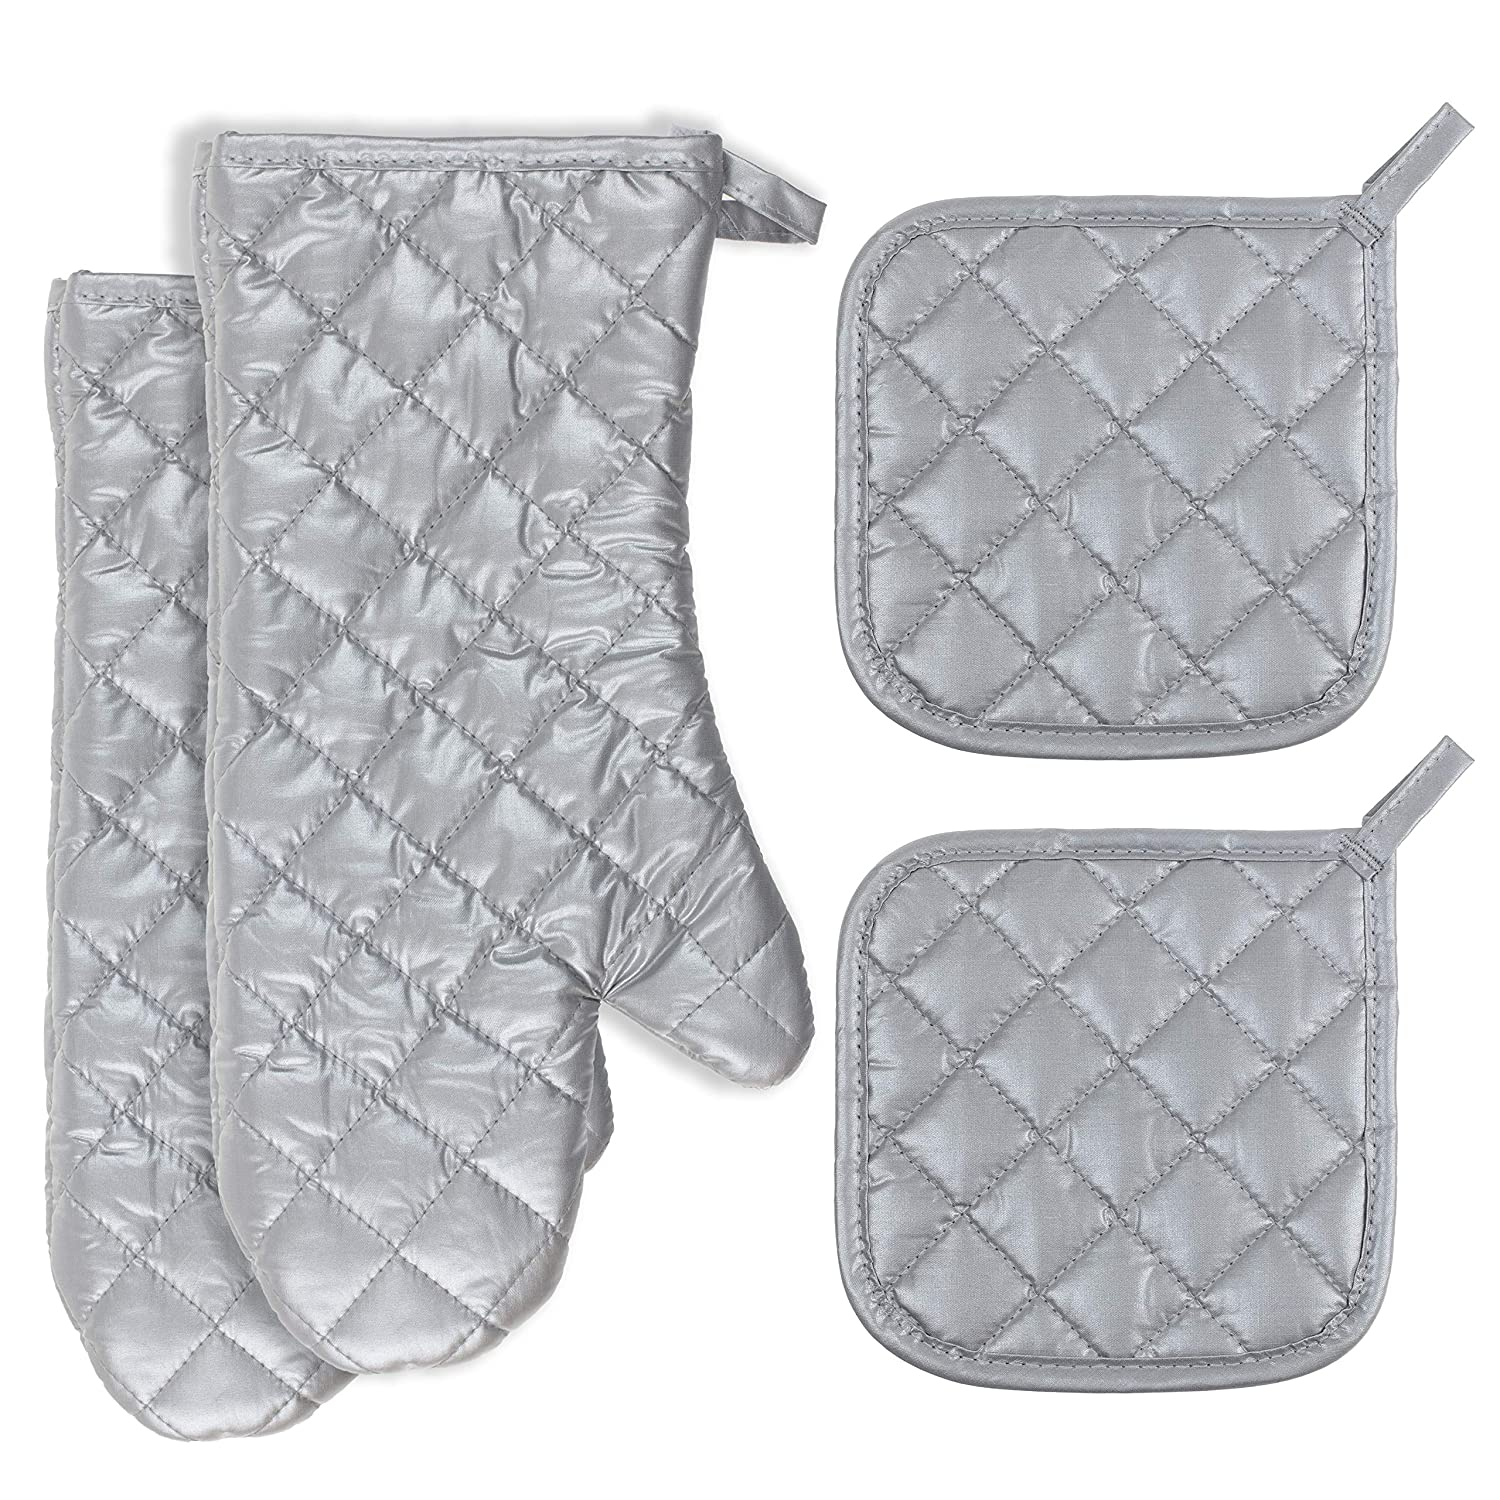 Buzhan Ovenmitts and Potholders Set,1 Pair of Quilted Cotton Lining Oven Mitts and 2pcs Set Cotton Pot Holders